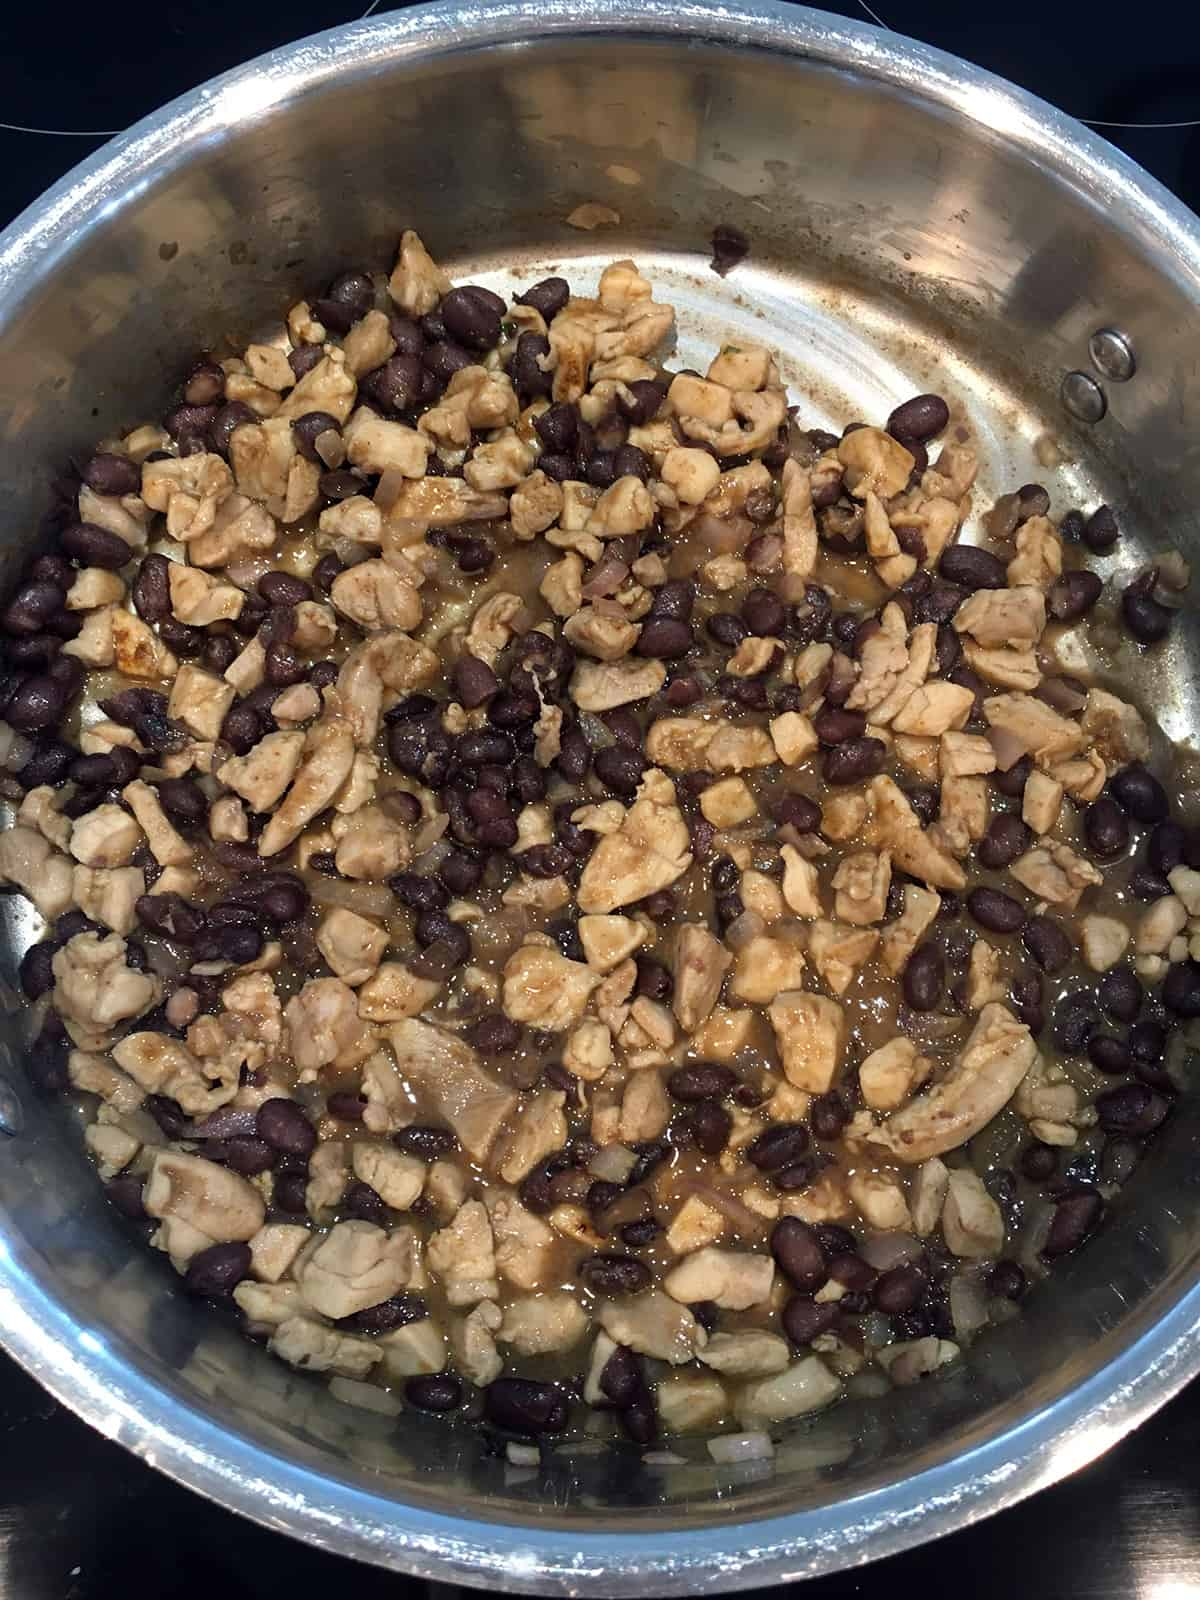 Cooking chicken, black beans, onions, chicken broth and spices in a stainless steel pan